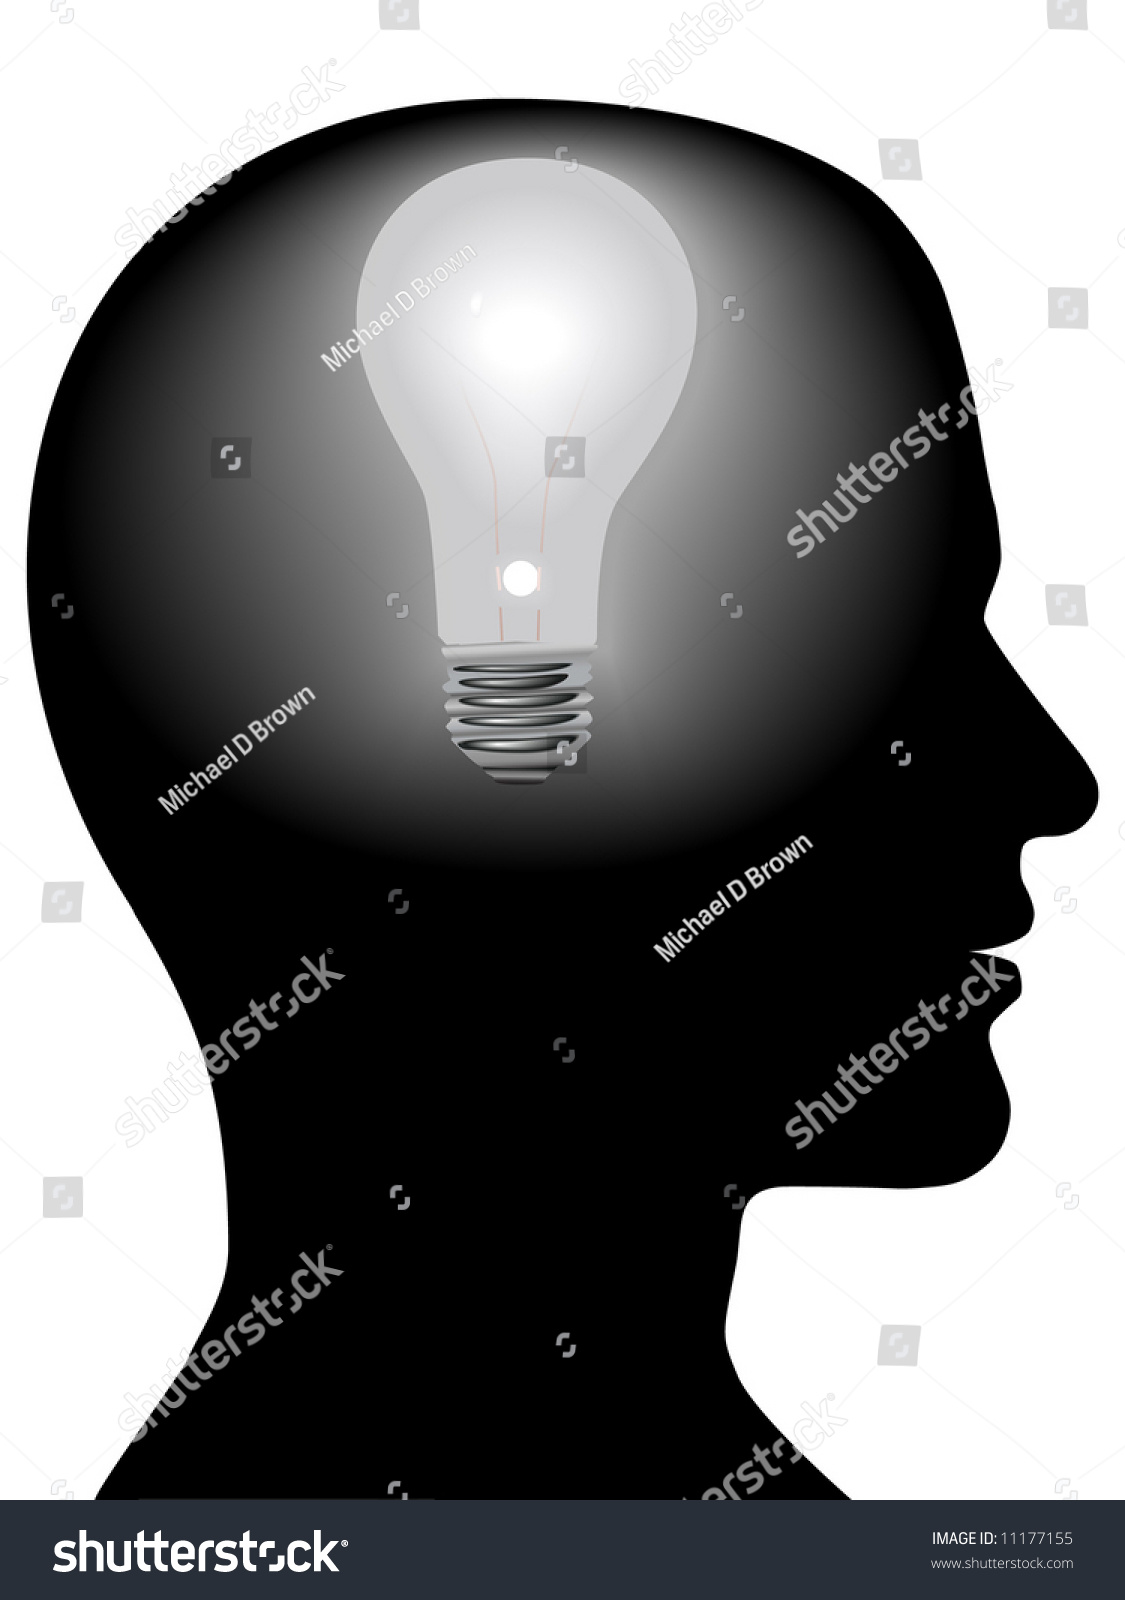 A Light Bulb Shines In The Head Of A Thinking Man Concept